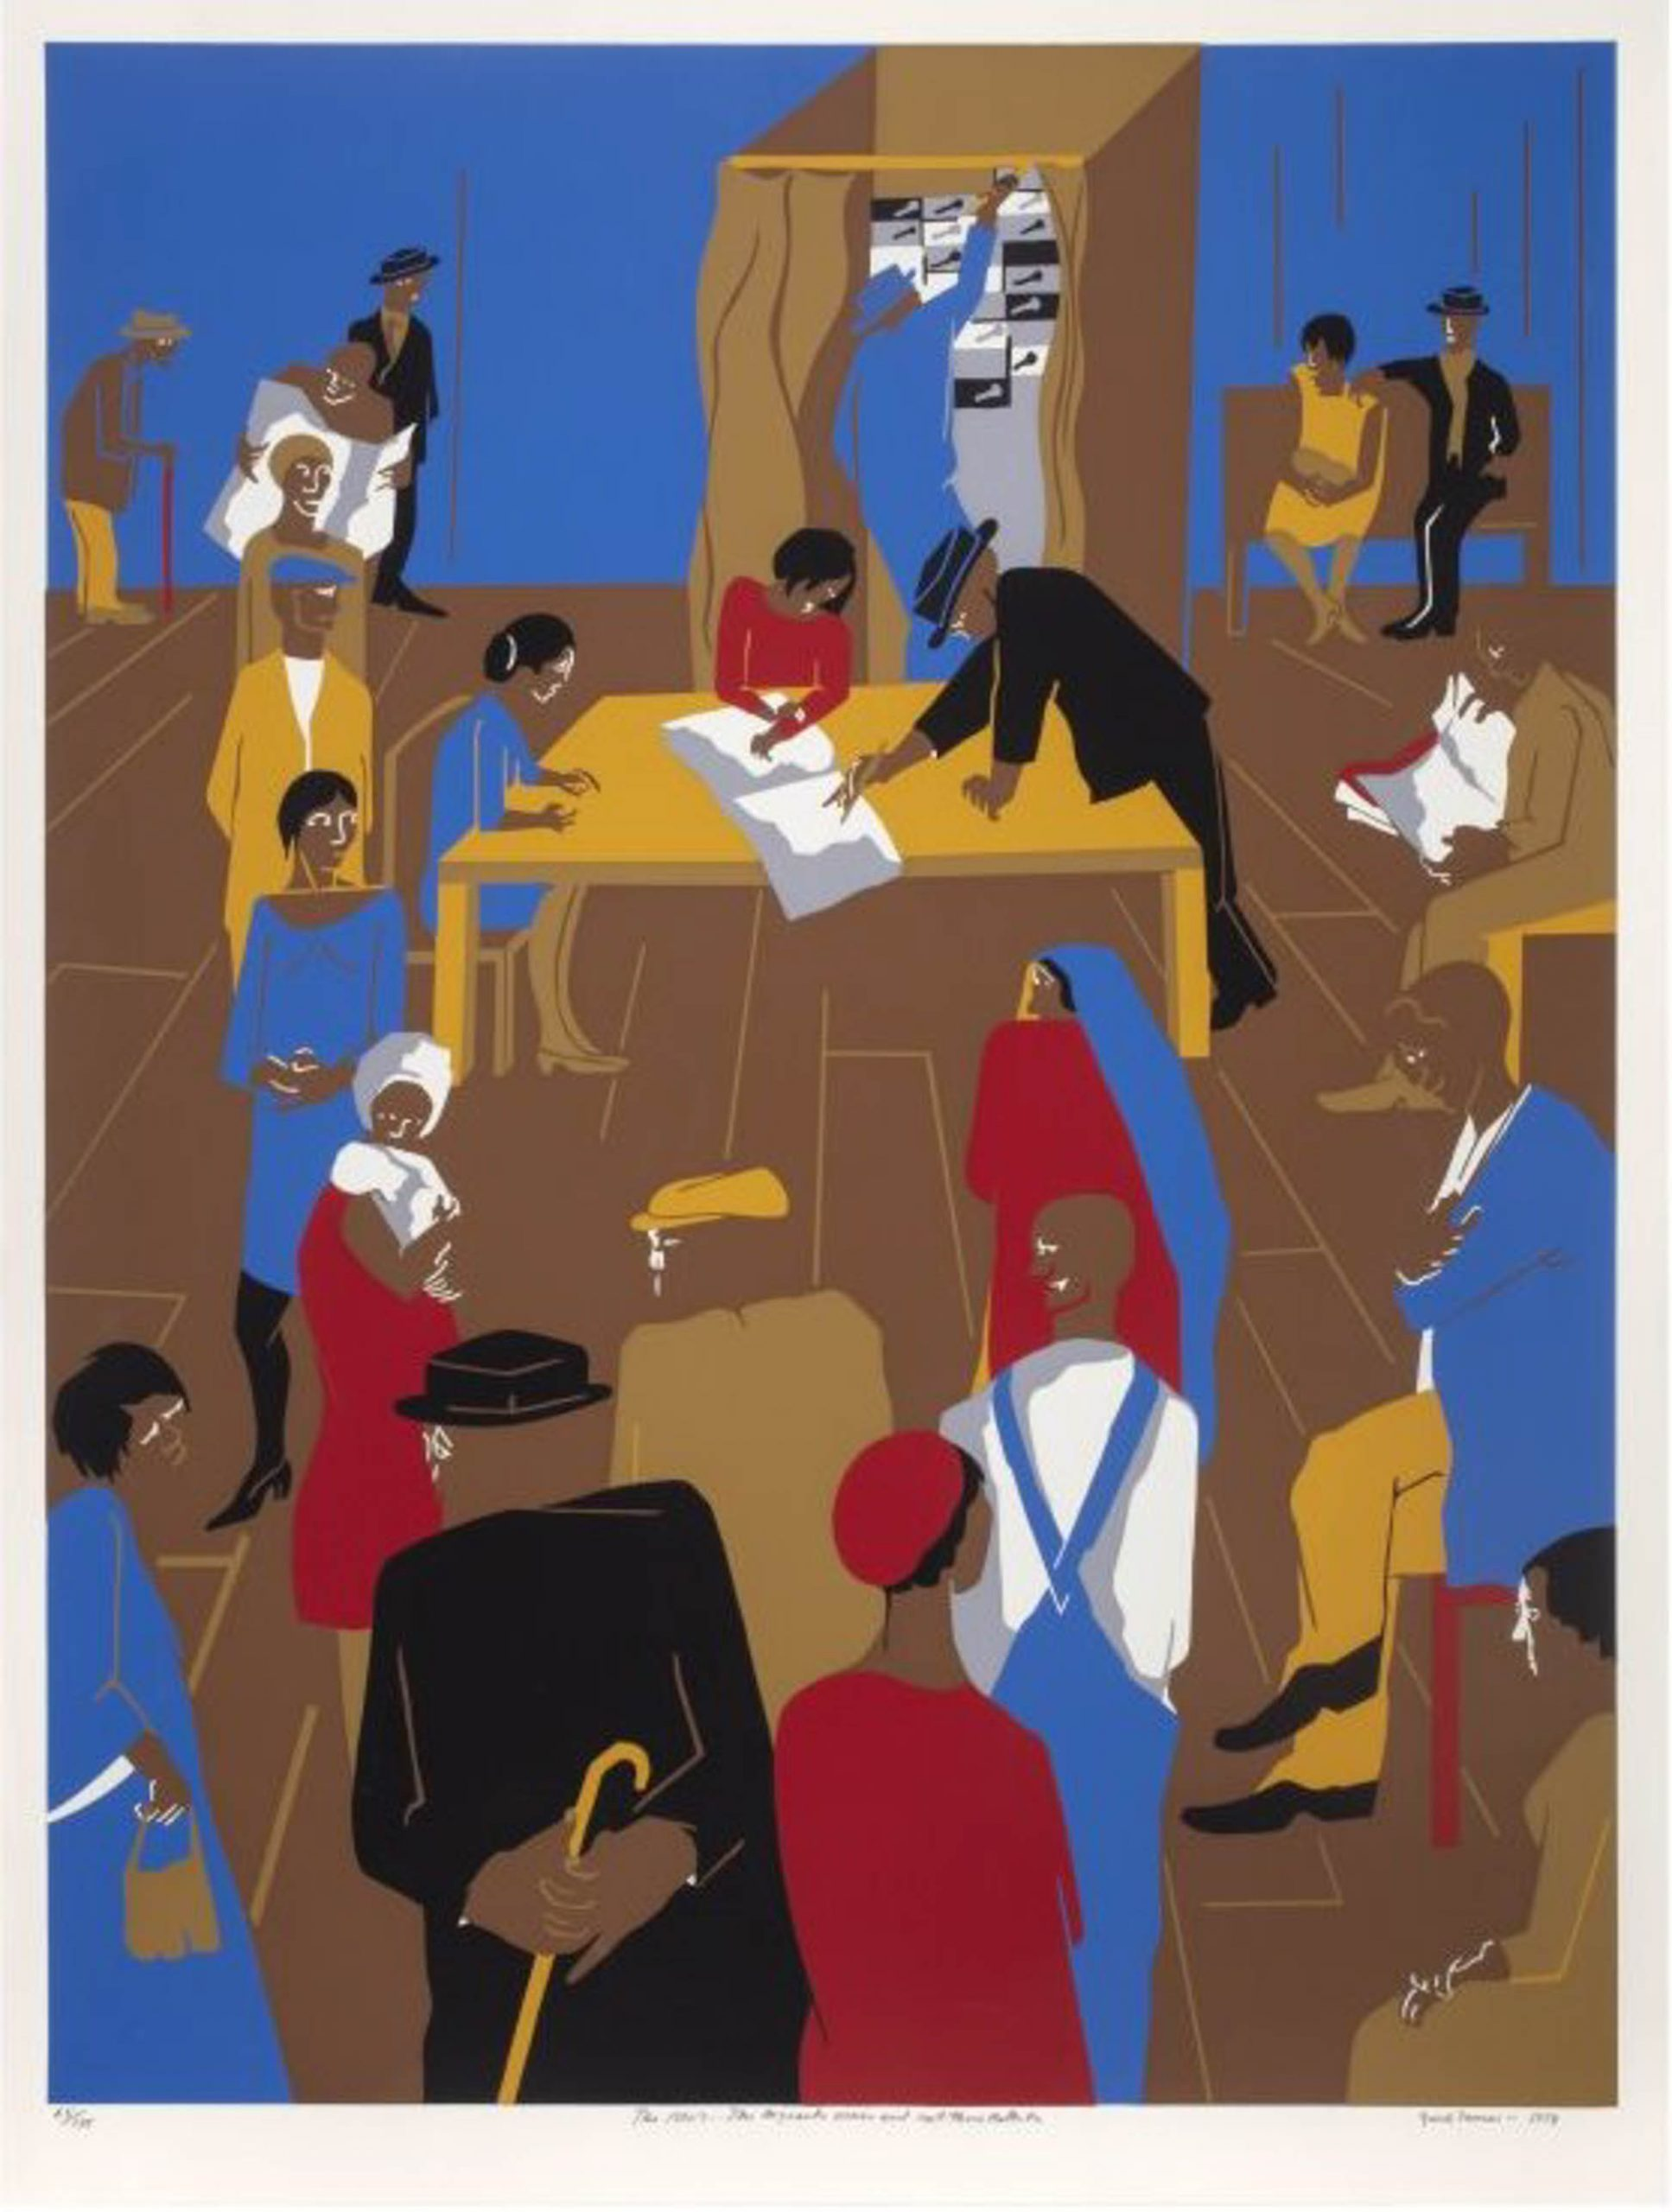 A serigraph print showing African Americans voting.